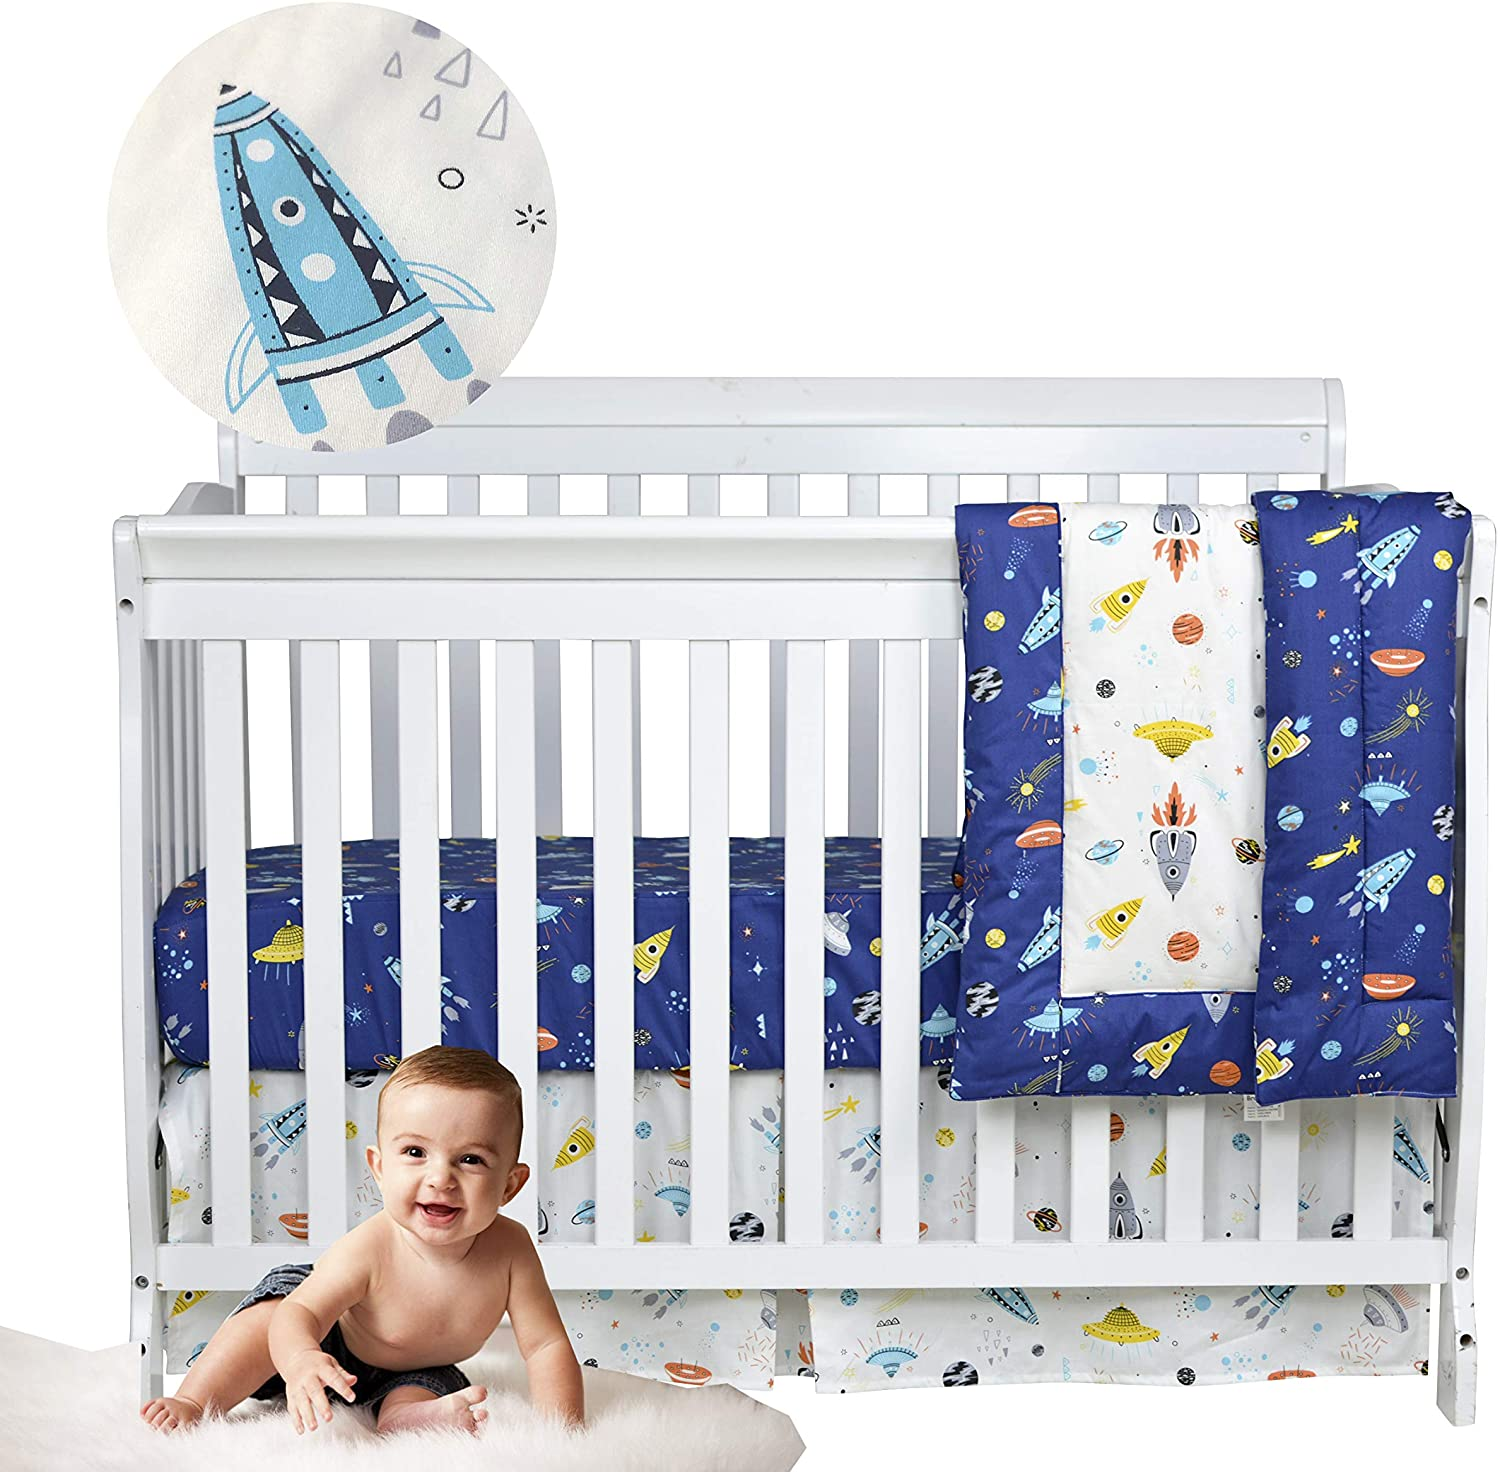 Brandream Baby Boys Crib Bedding Sets Outer Space, Rocket & Planet & Astronaut Nursery Bedding Set,3 Piece Baby Infant Newborn Crib Comforter Sets 100% Cotton, Navy/White